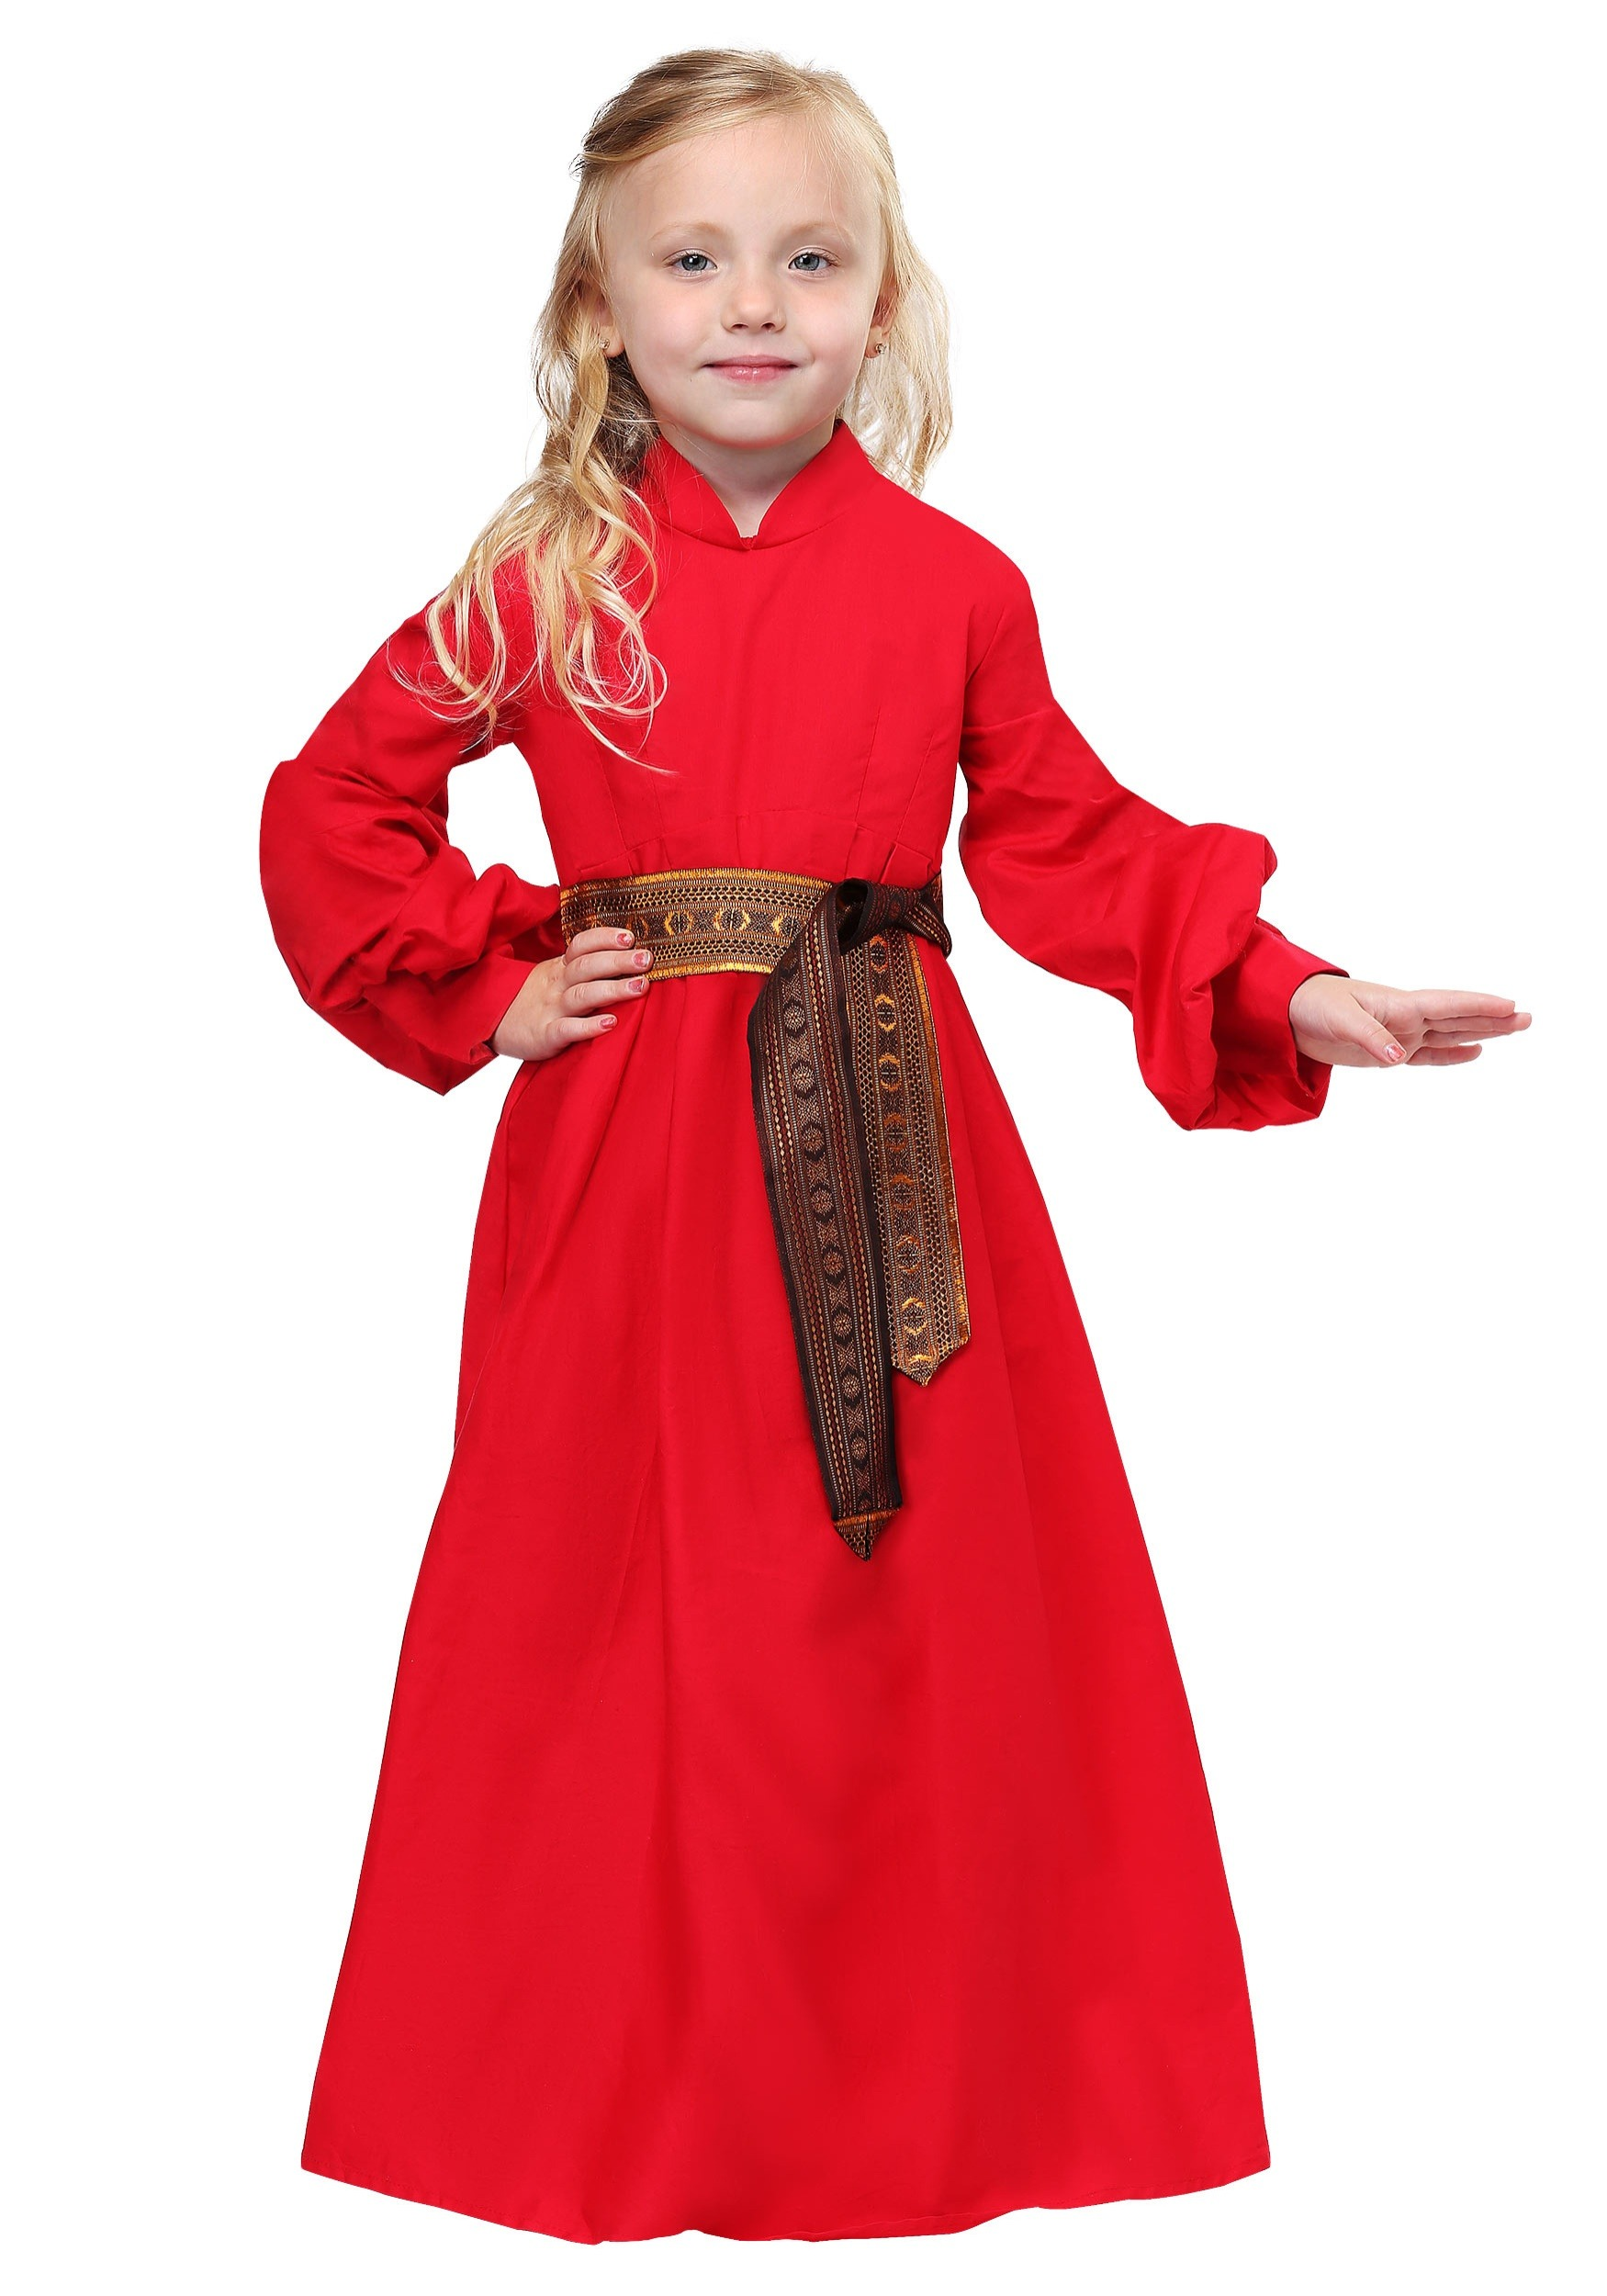 Princess Bride Buttercup Peasant Dress Costume for Toddlers